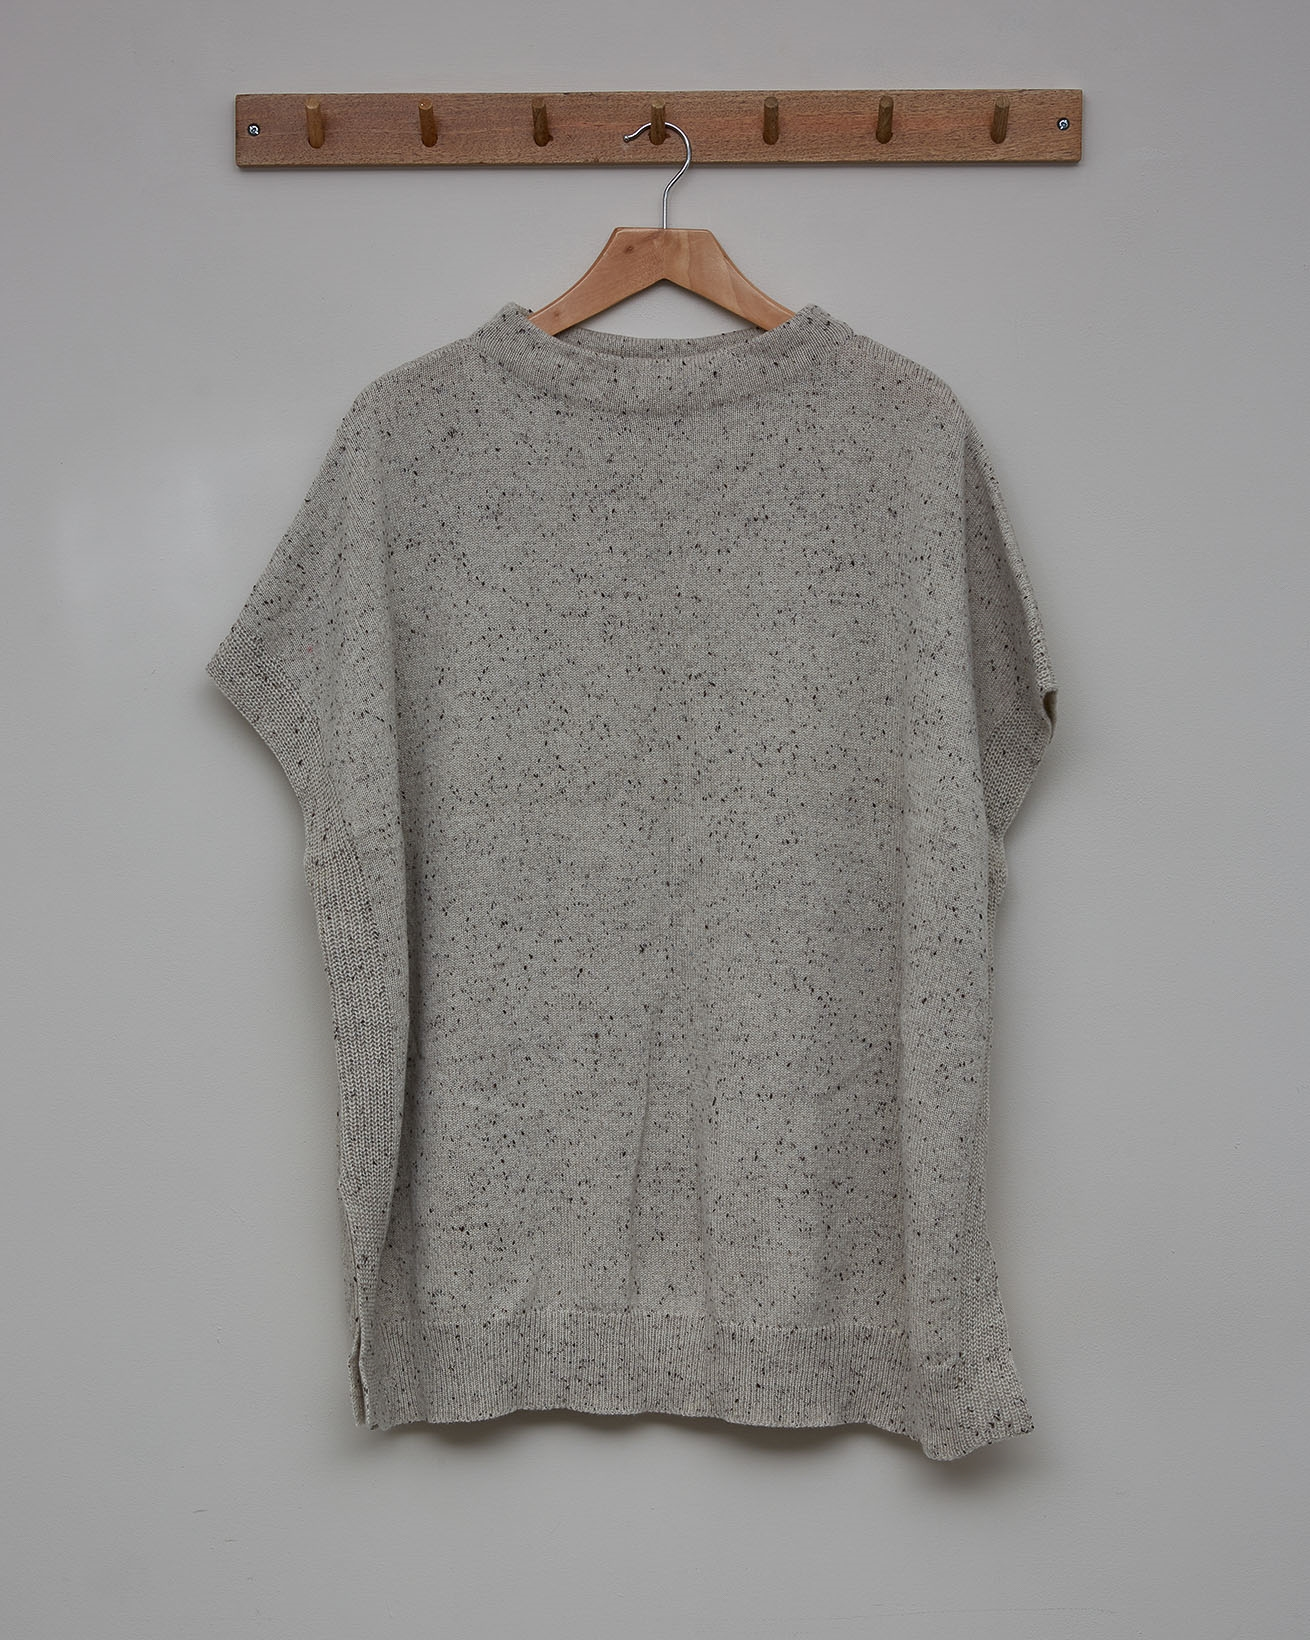 Donegal Boat Neck Sleeveless Tunic - Size Small - Oatmeal - 2481